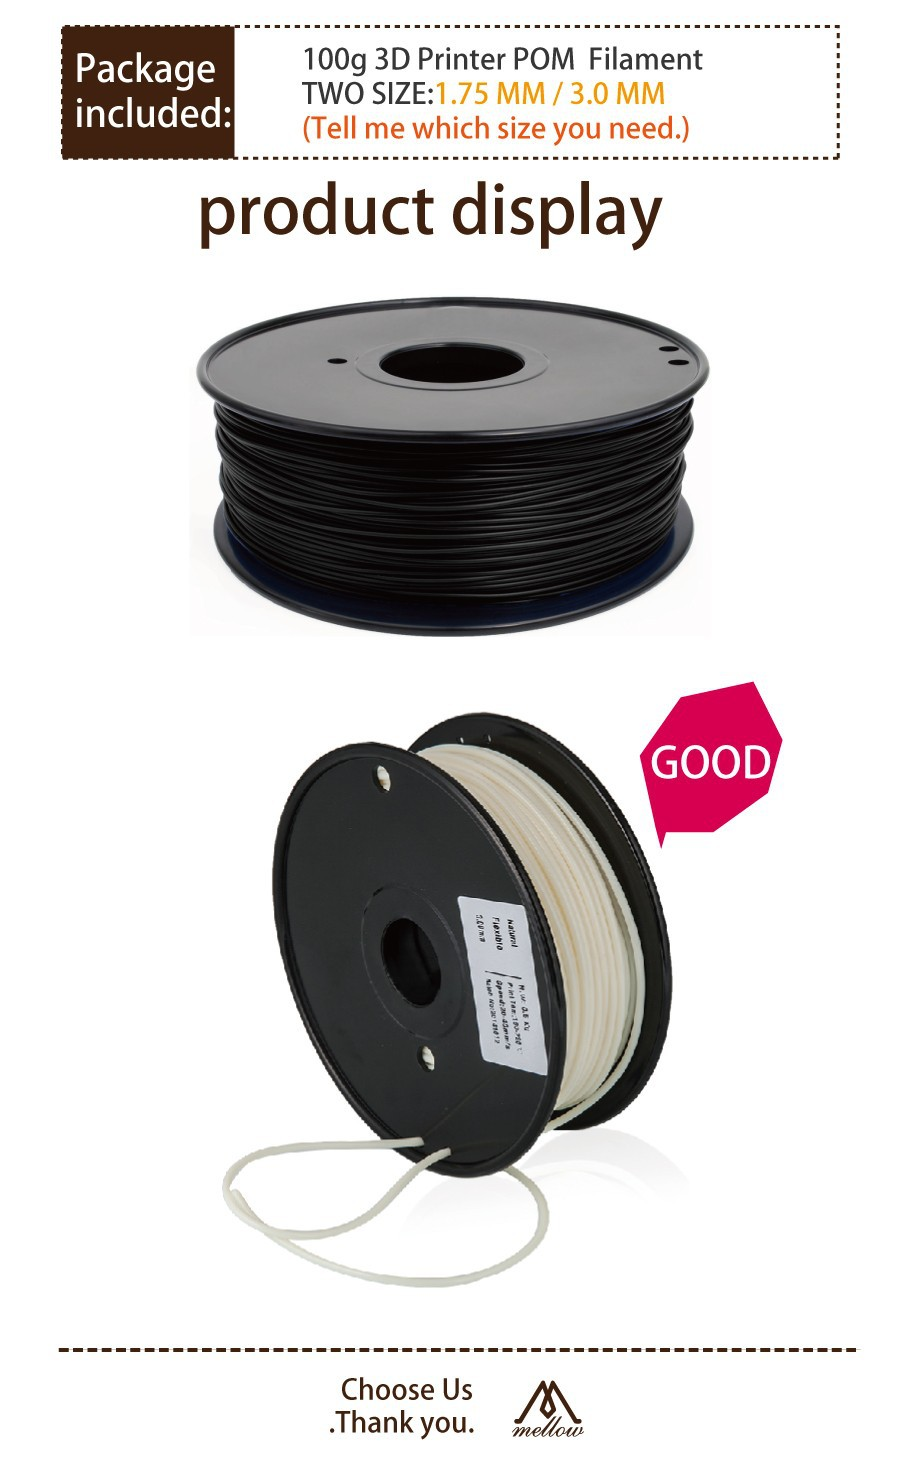 3D Printer Filament - POM 4